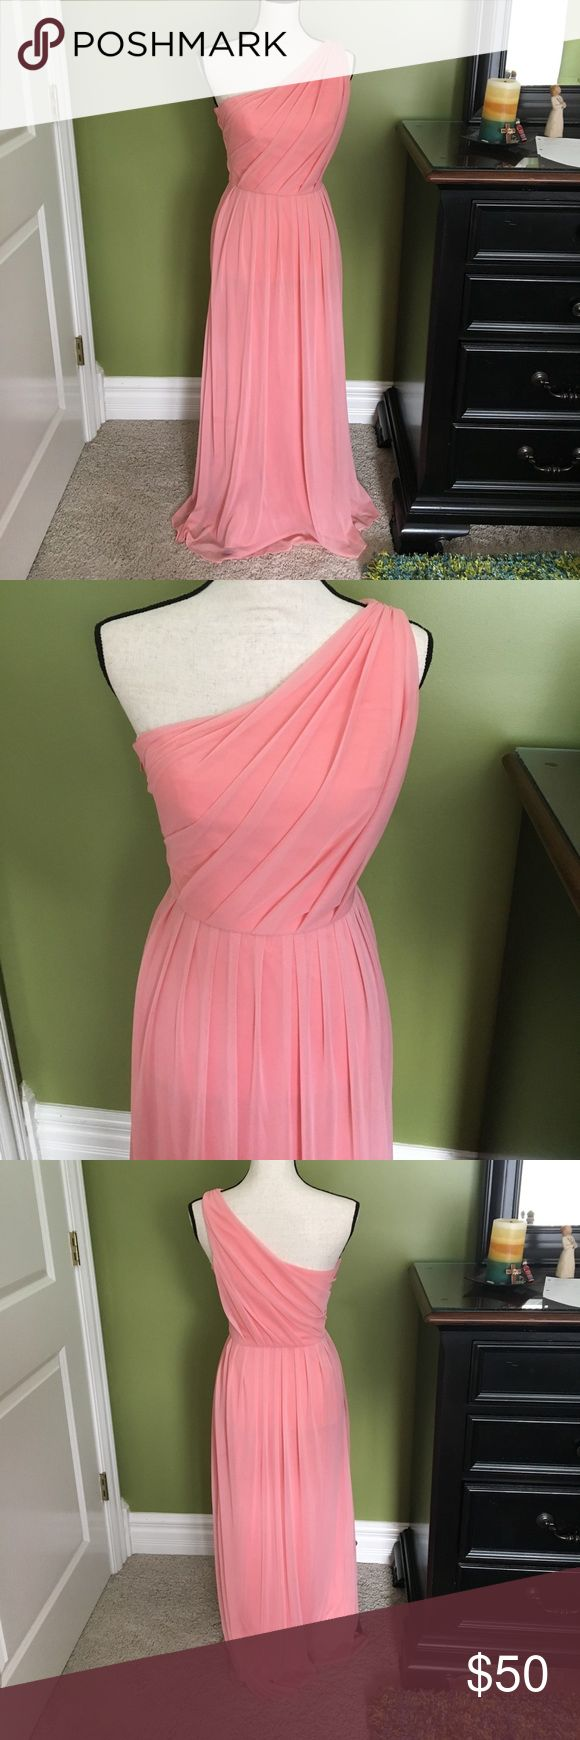 Coral maxi dress I wore this once as a bridesmaid in a wedding and have not had the chance to wear it again. It is in perfect condition. Perfect for a wedding or just to get a little dressed up! Dresses Prom